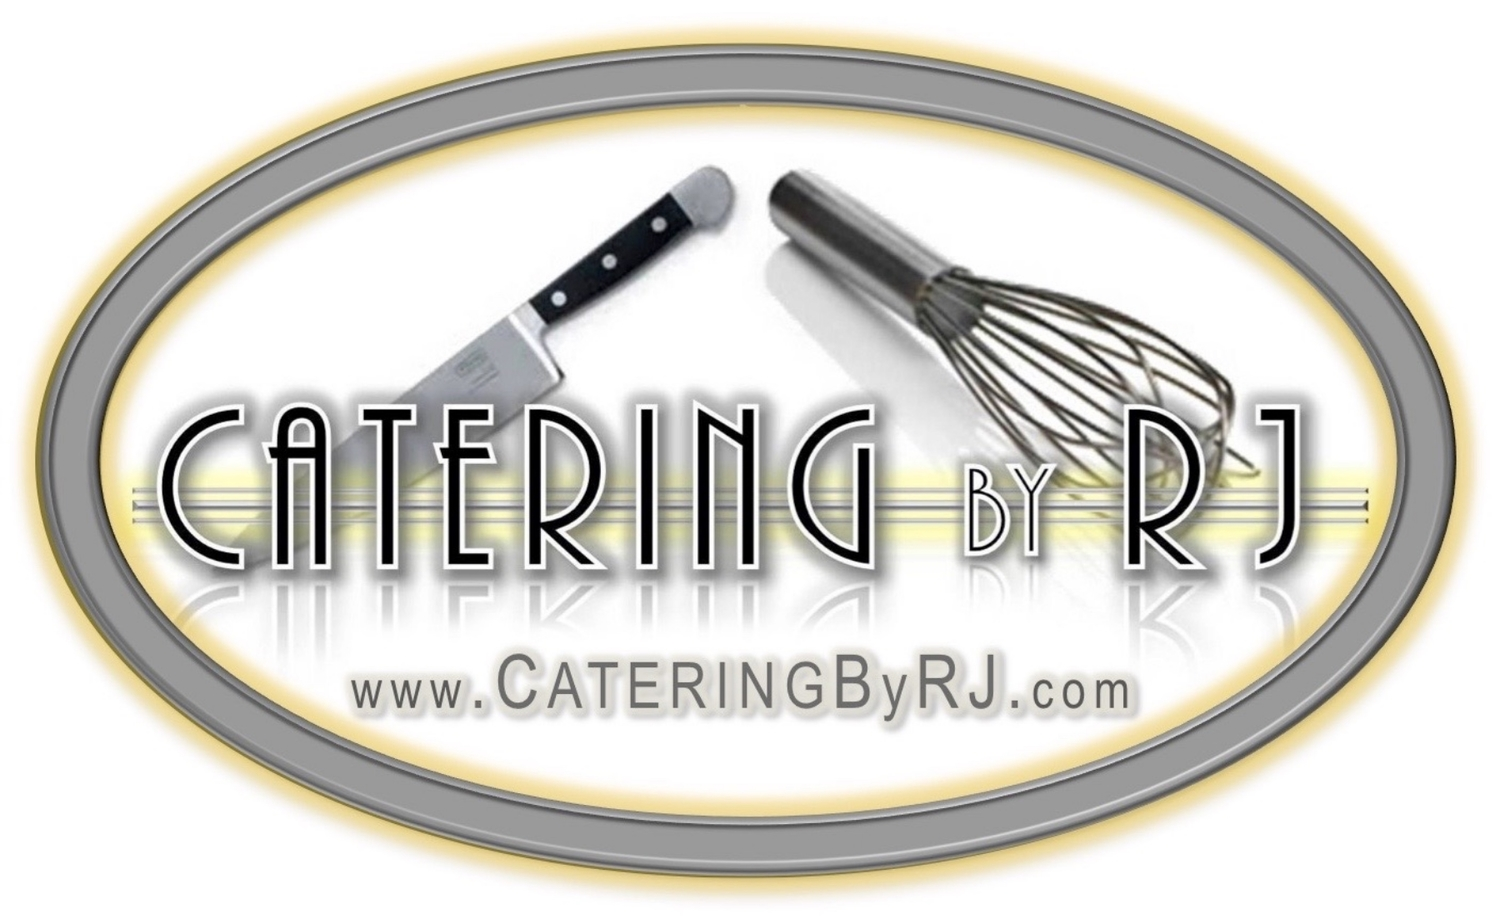 Catering By RJ